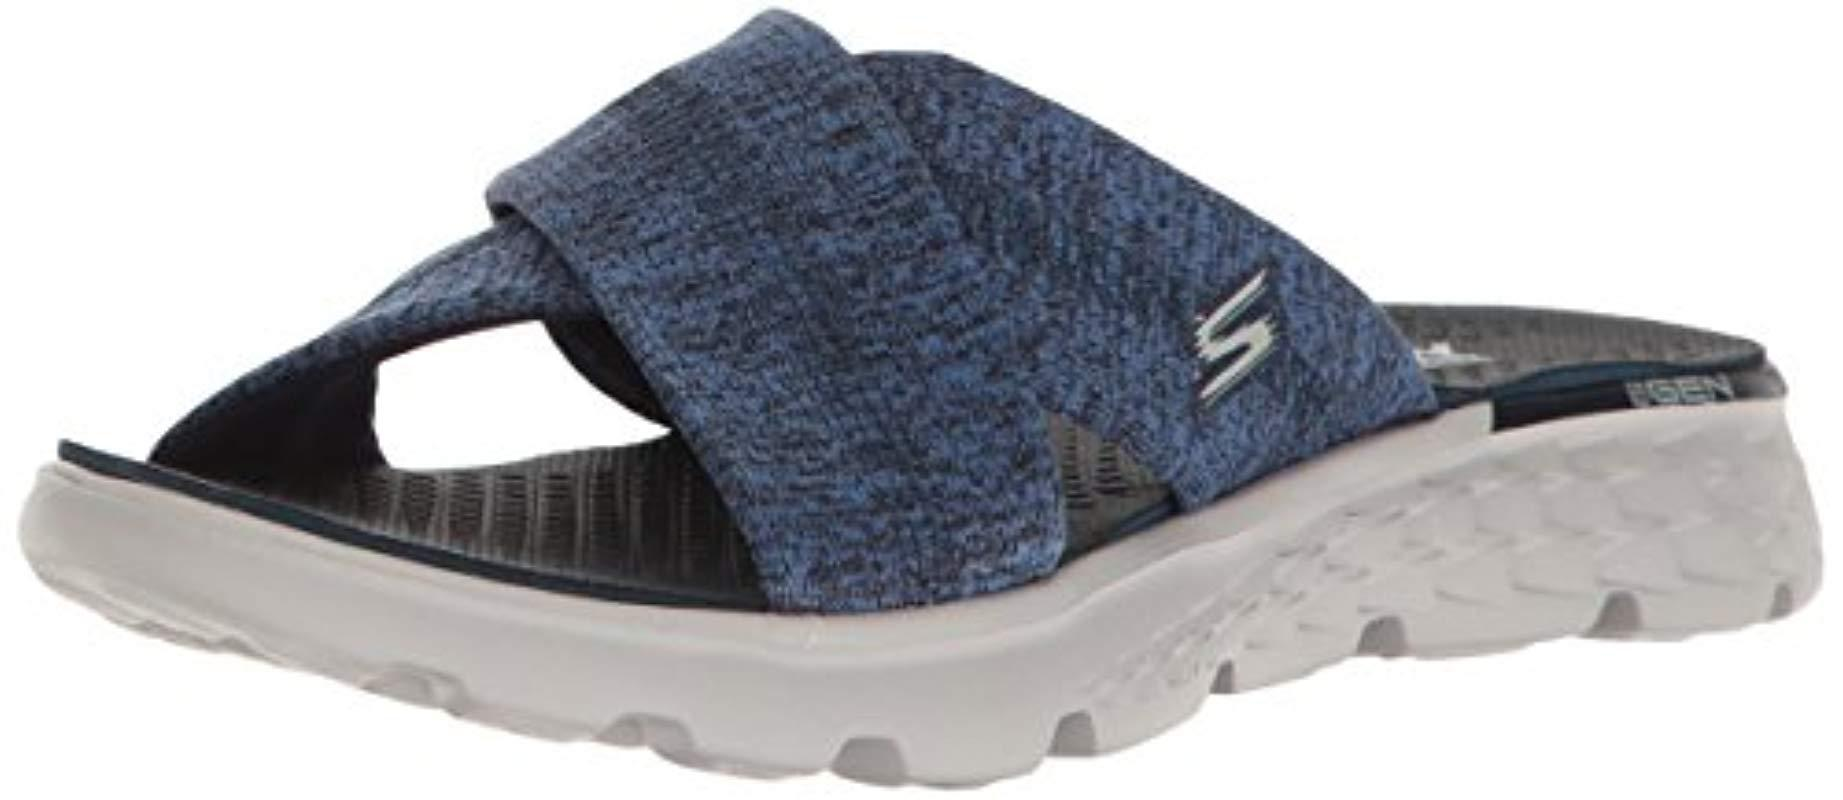 bf8e51a32ee1 Lyst - Skechers Performance On The Go 400 Tropical Flip Flop in Blue ...